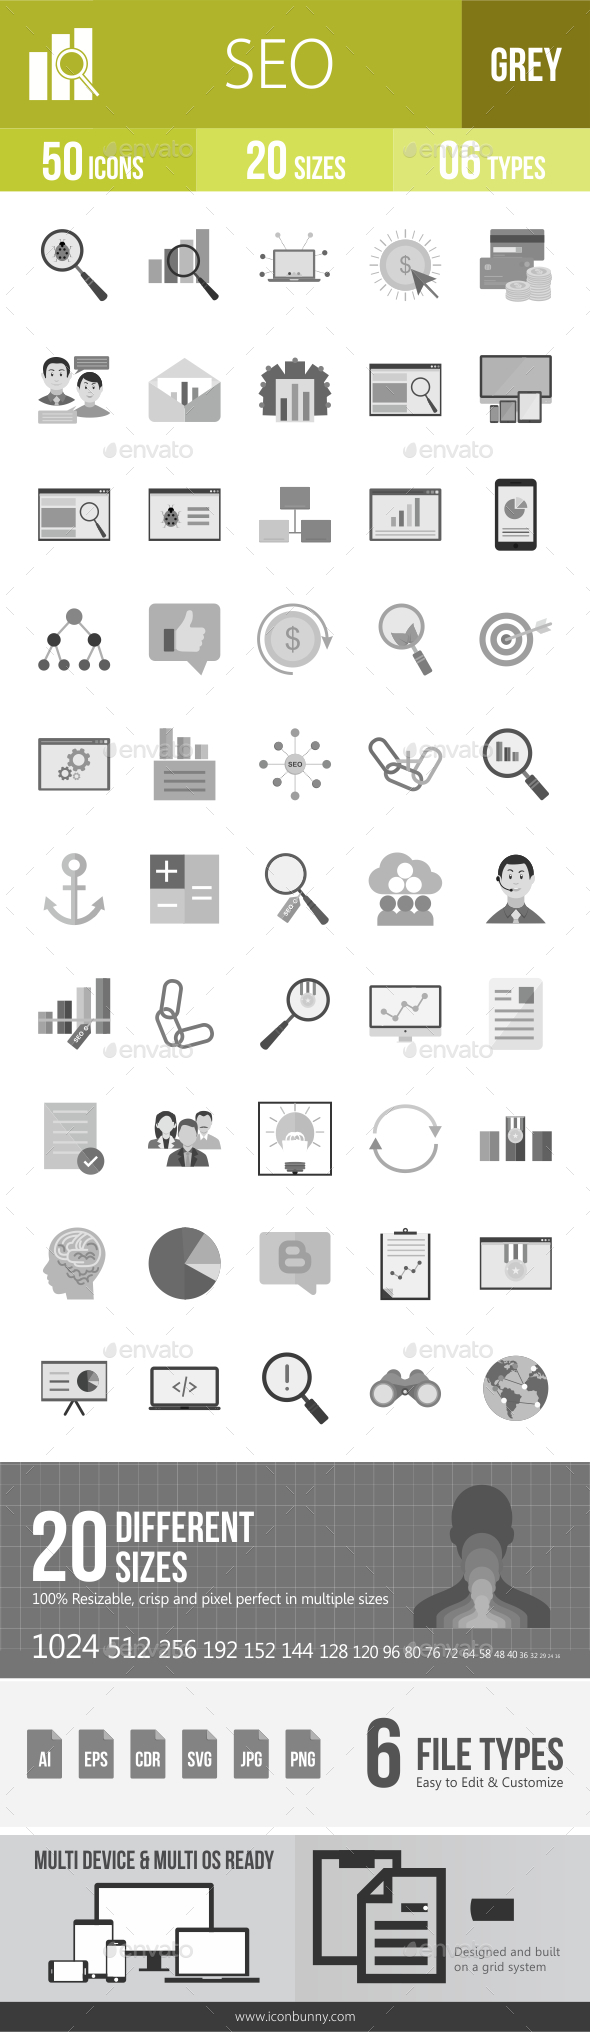 50 SEO Grey Scale Icons - Icons